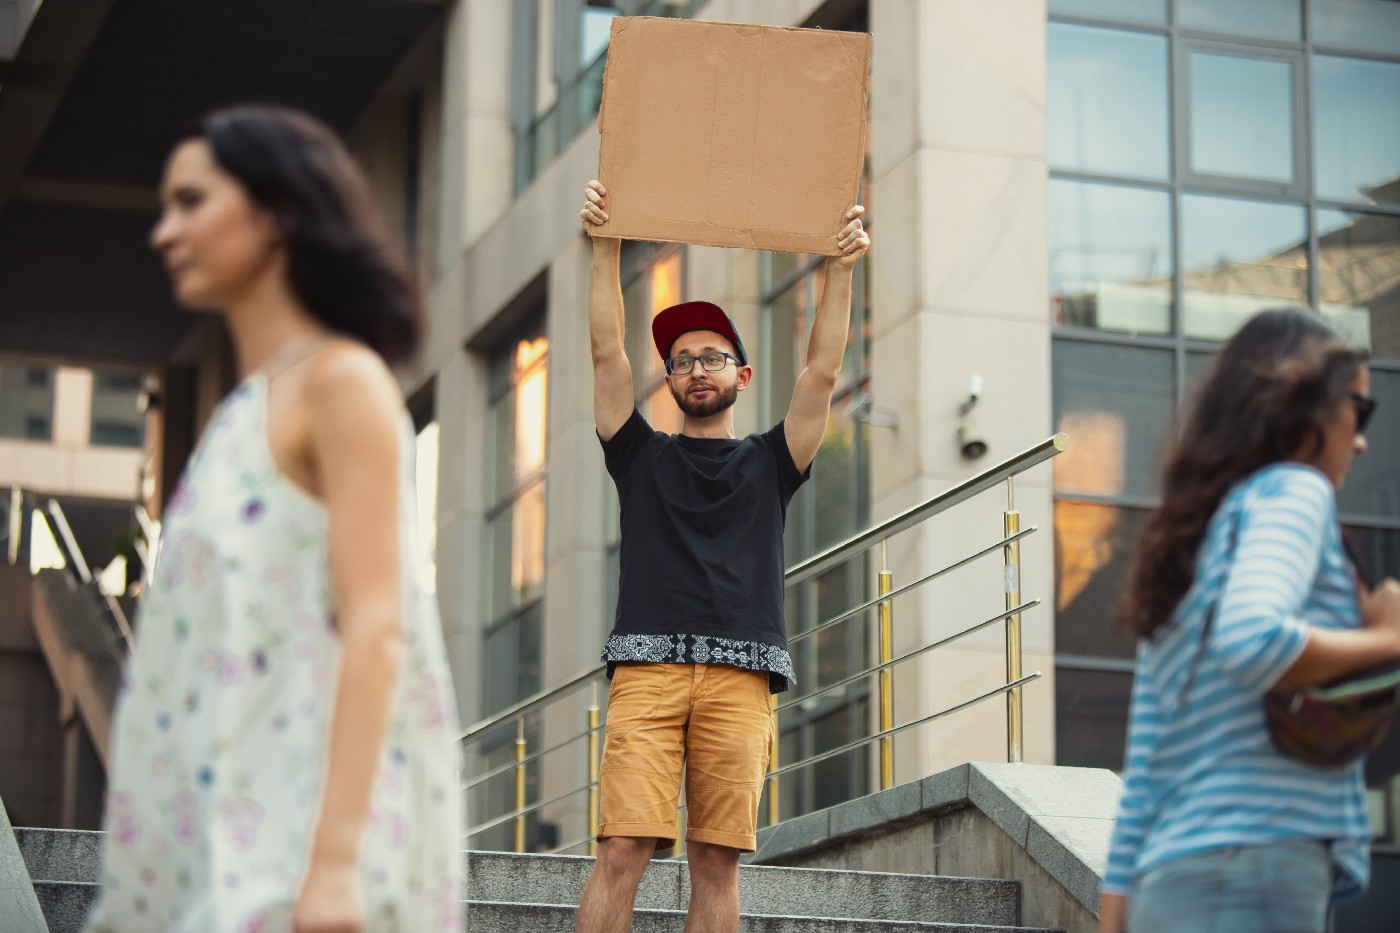 Man with empty sign.